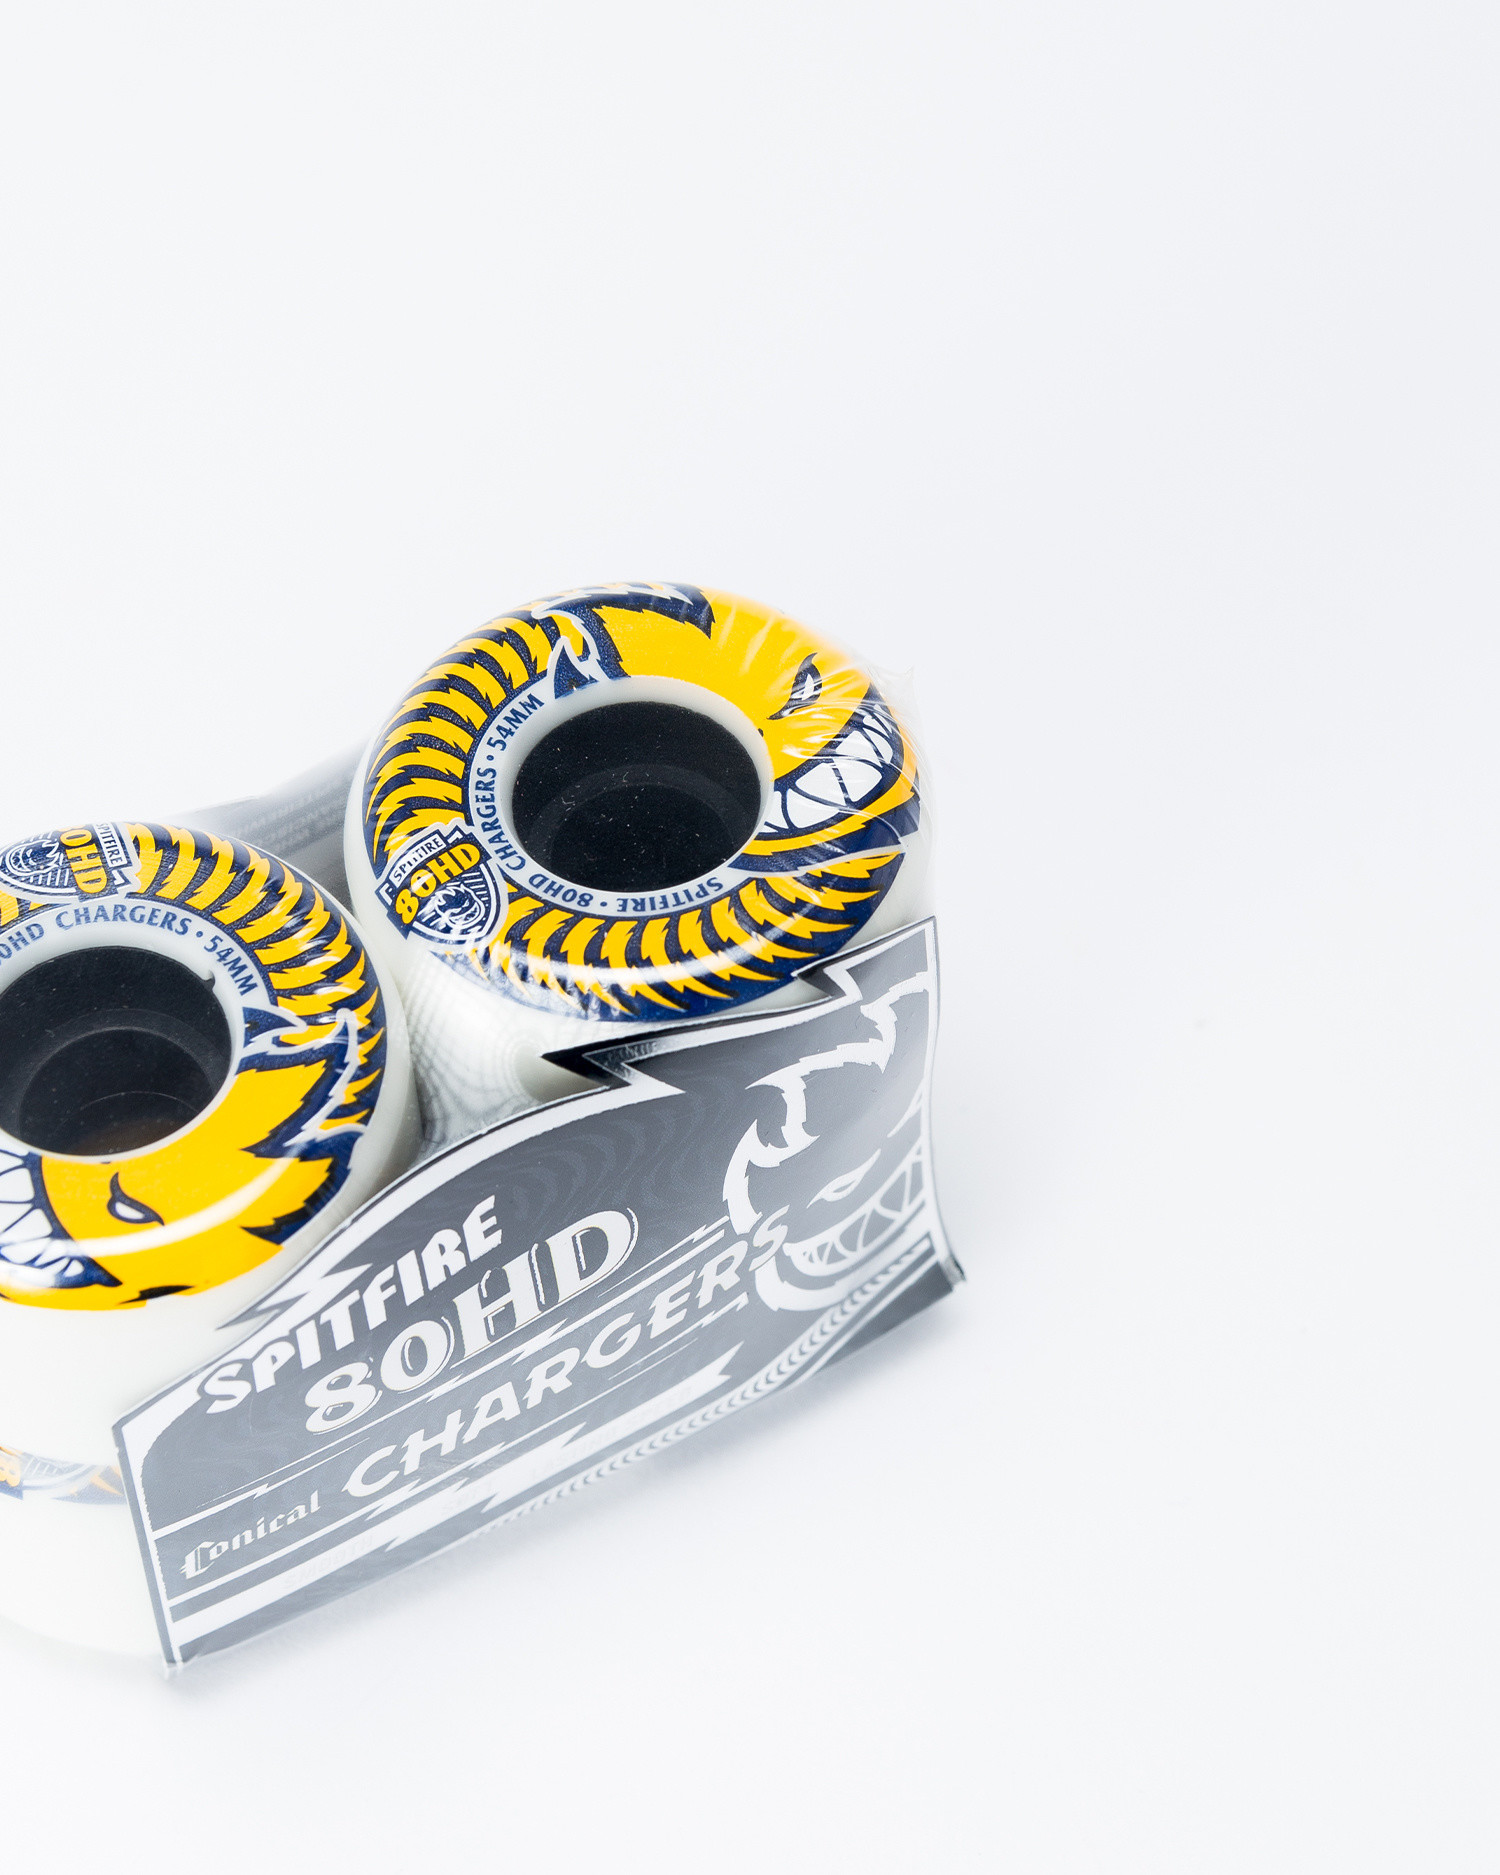 Spitfire Charger Whire yellow 54mm